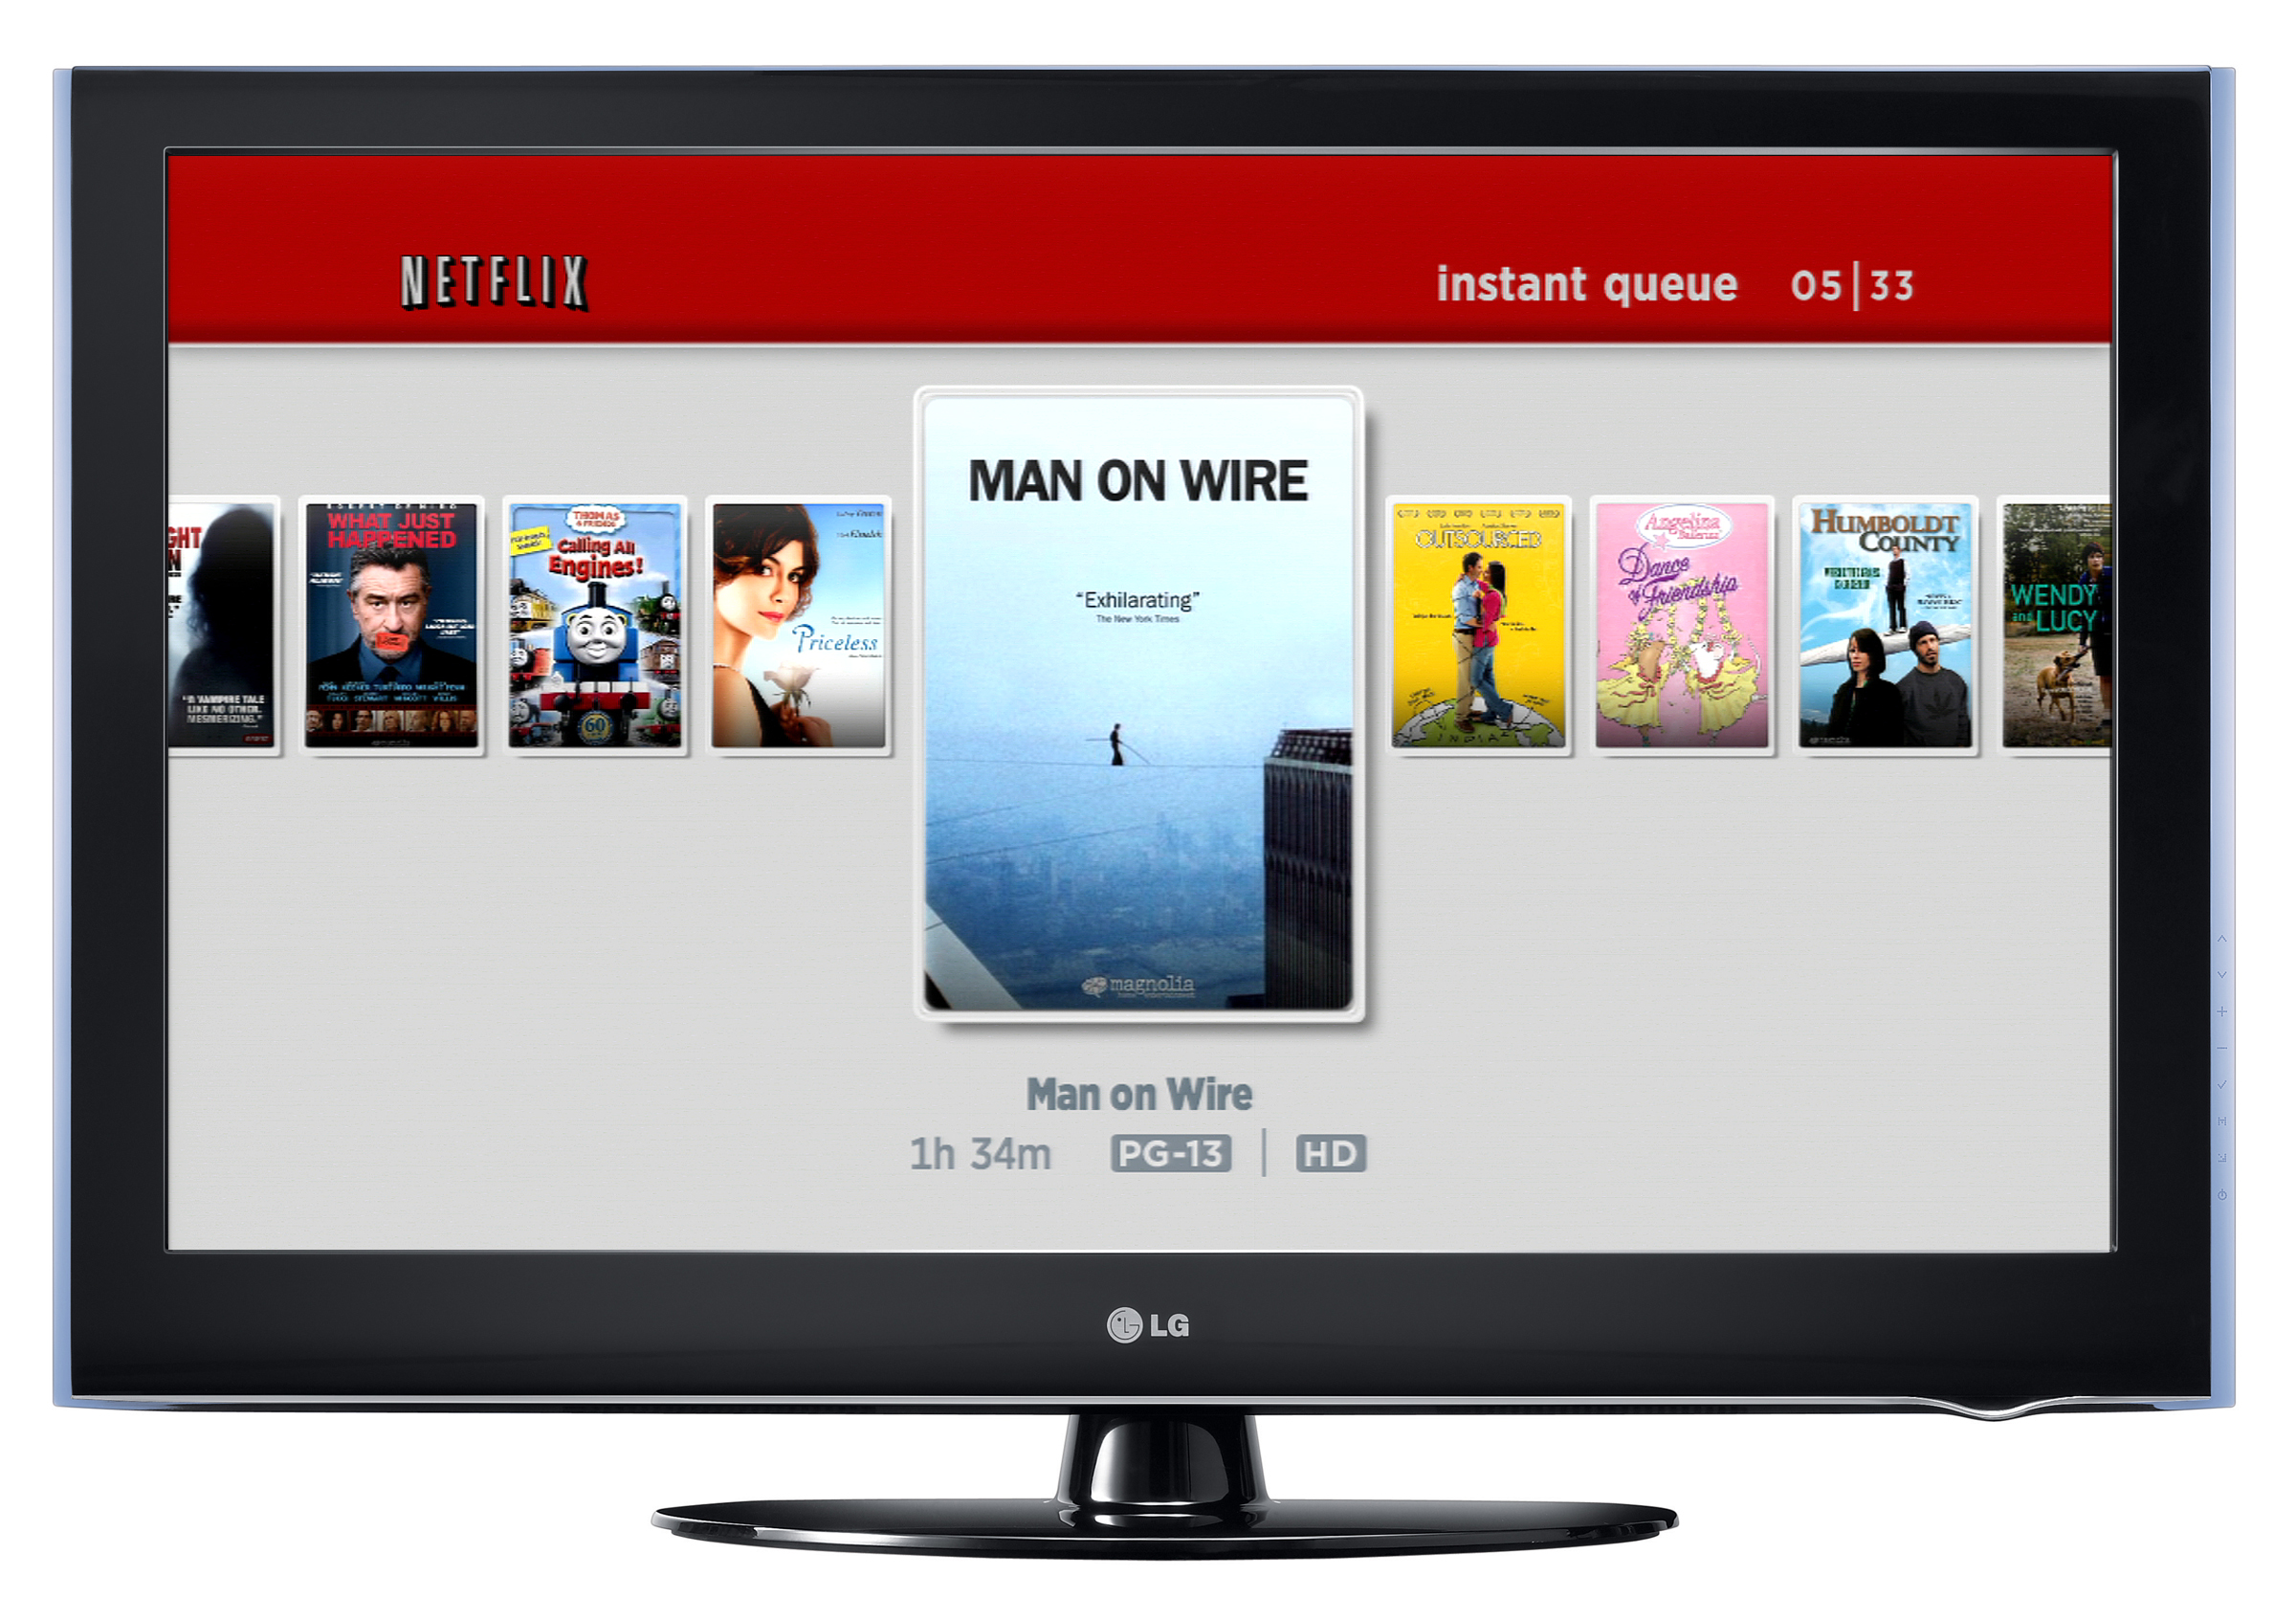 NetFlix Launches in Brazil and Latin America and the Caribbean